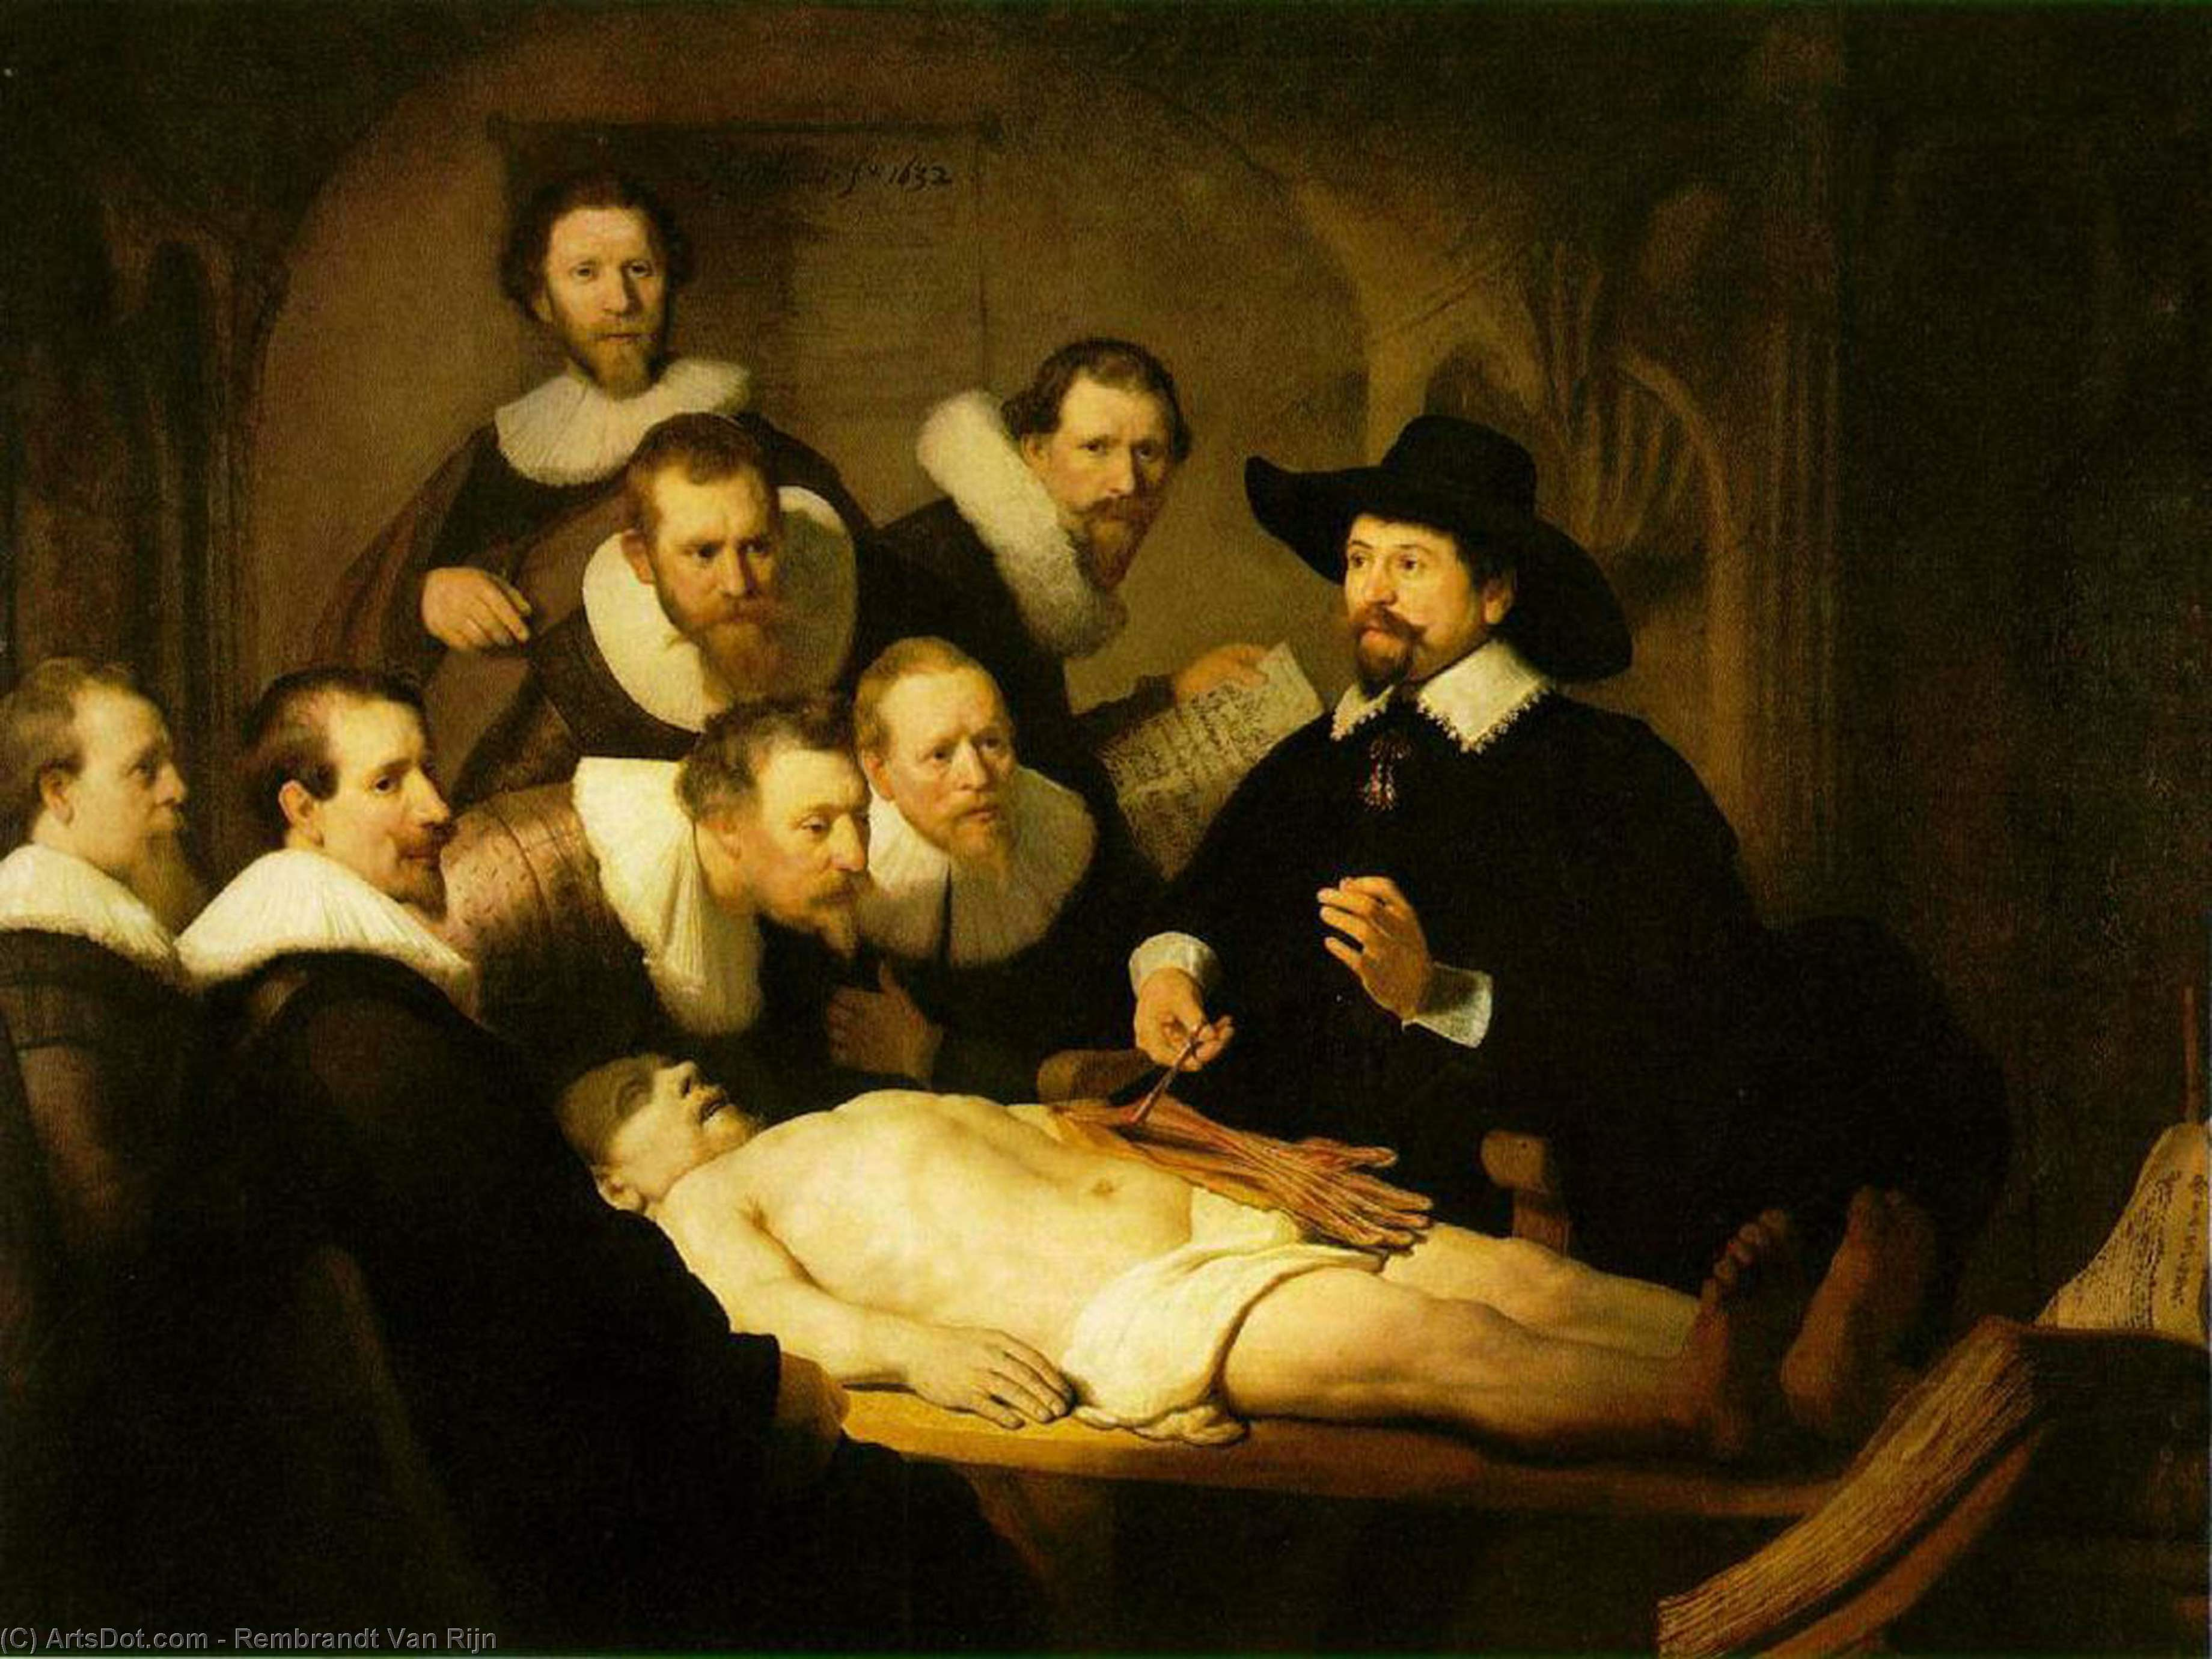 Wikioo.org - The Encyclopedia of Fine Arts - Painting, Artwork by Rembrandt Van Rijn - The Anatomy Lecture of Dr. Nicolaes Tulp [1632]